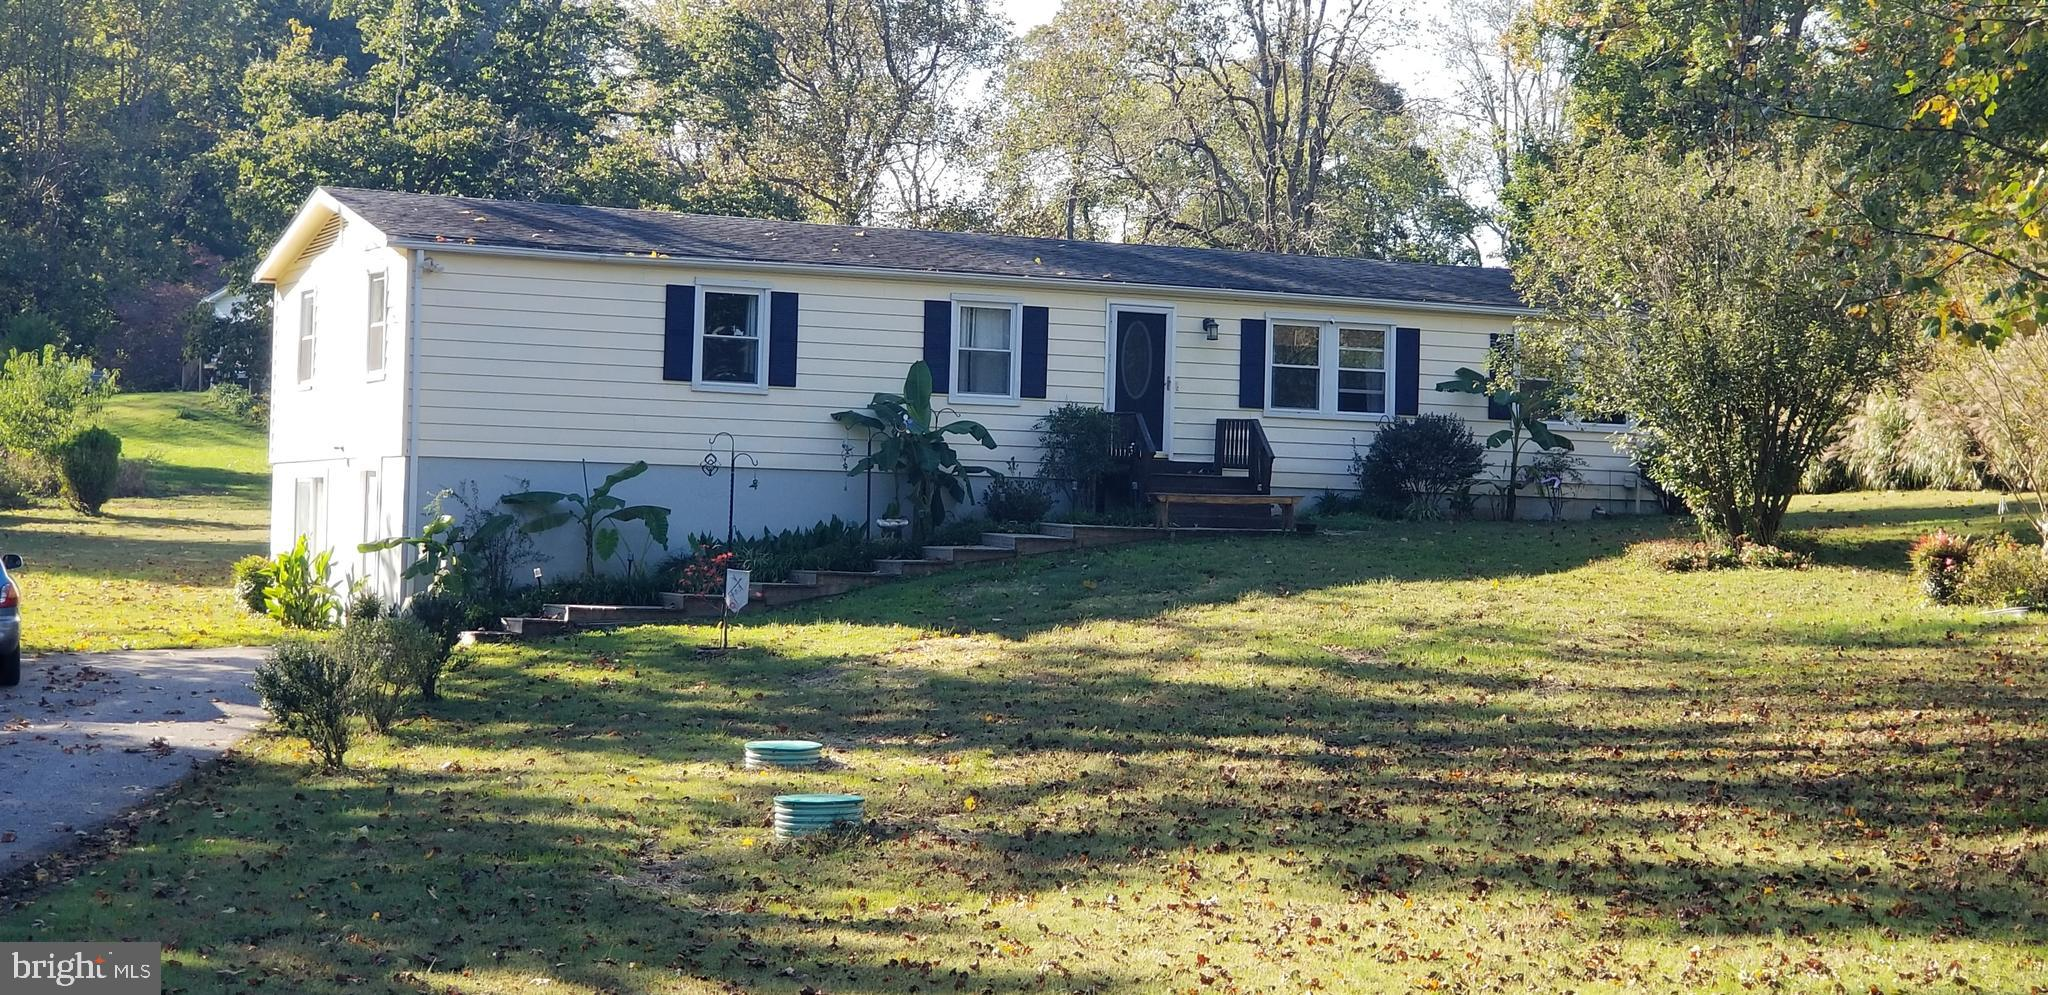 Price Reduced!  This home is just a few minutes from Route 4 on a quiet private and flat cul-de-sac